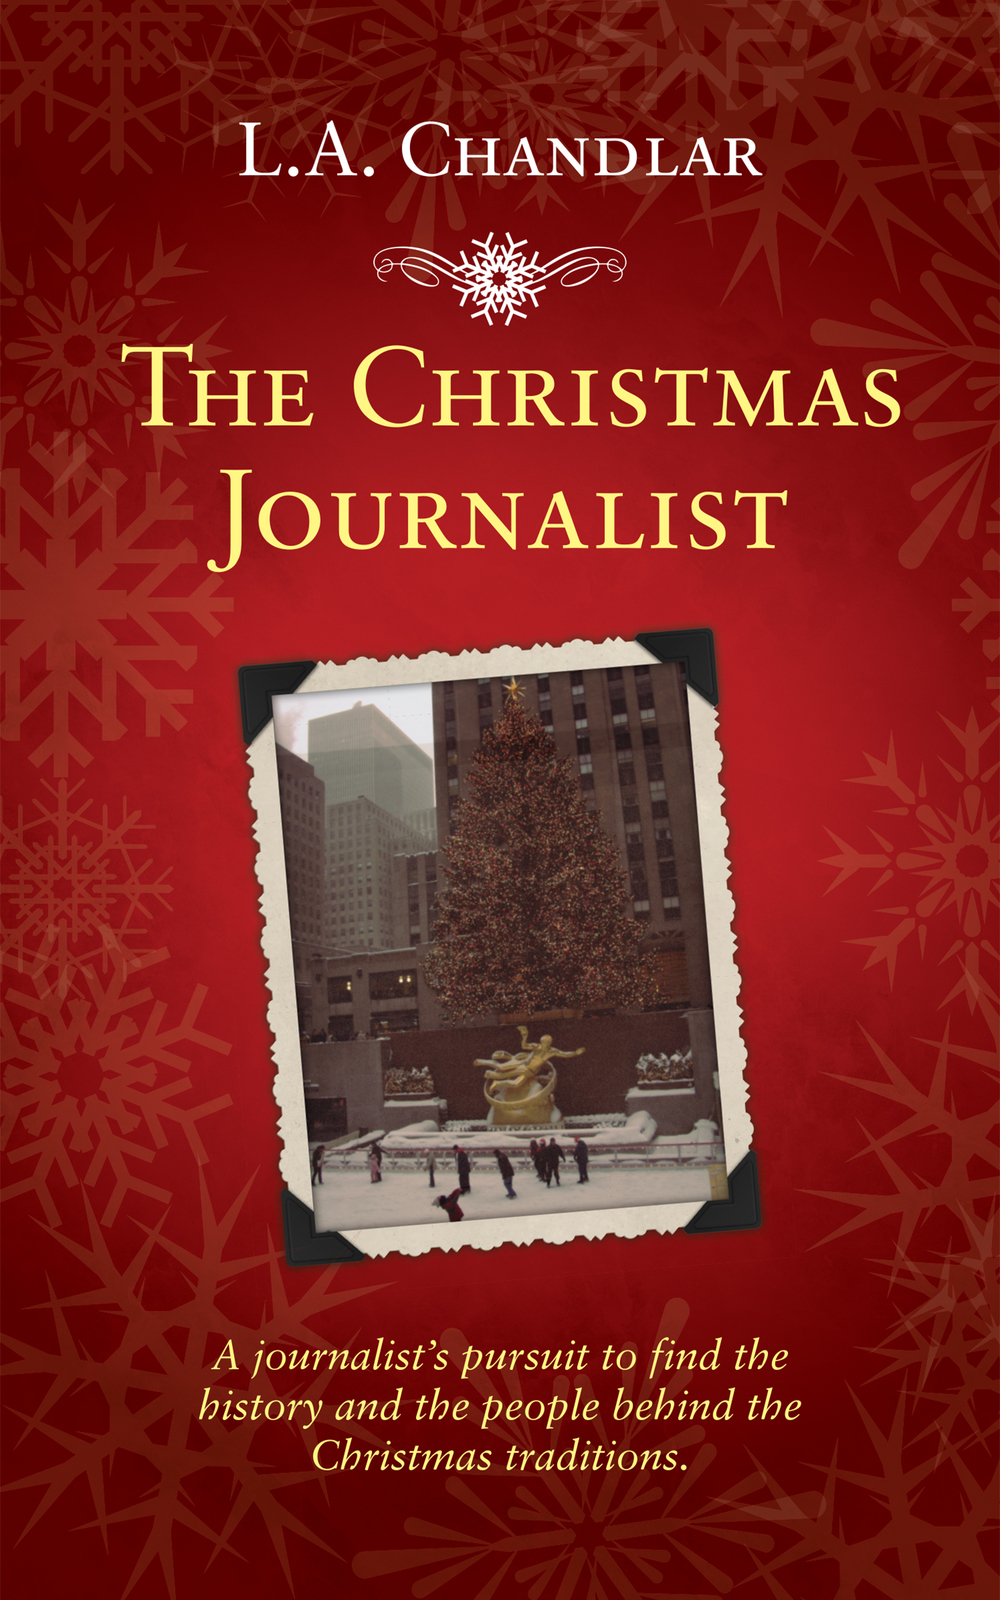 Christmas Journal Cover_Promo.jpg